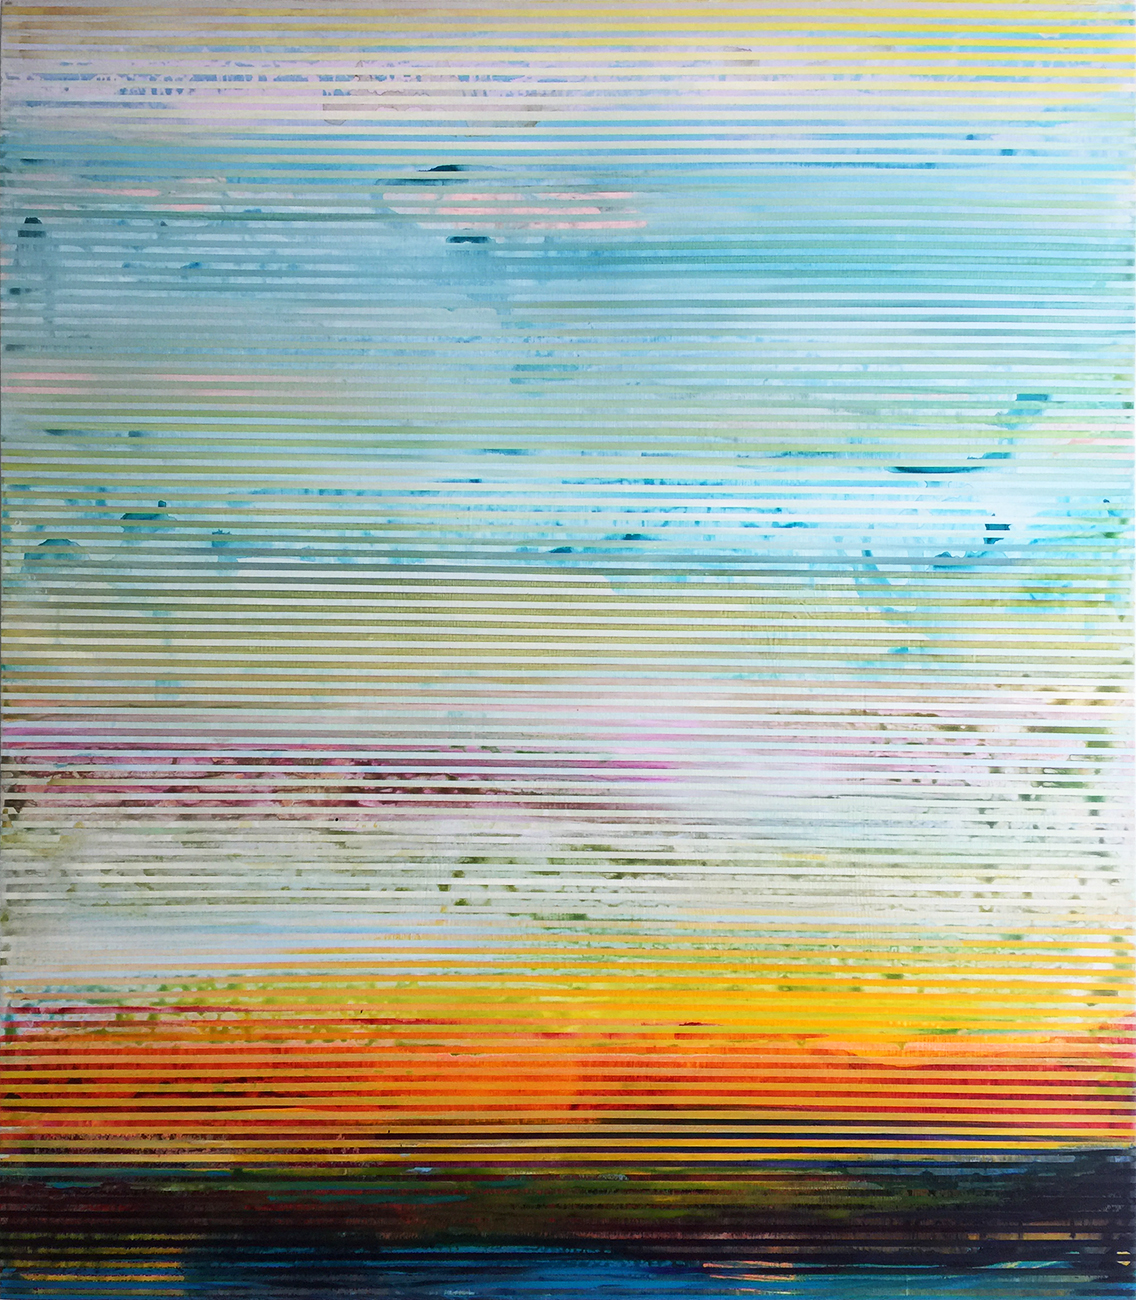 Weaving Landscape No.45_42 x 48 inches_2017